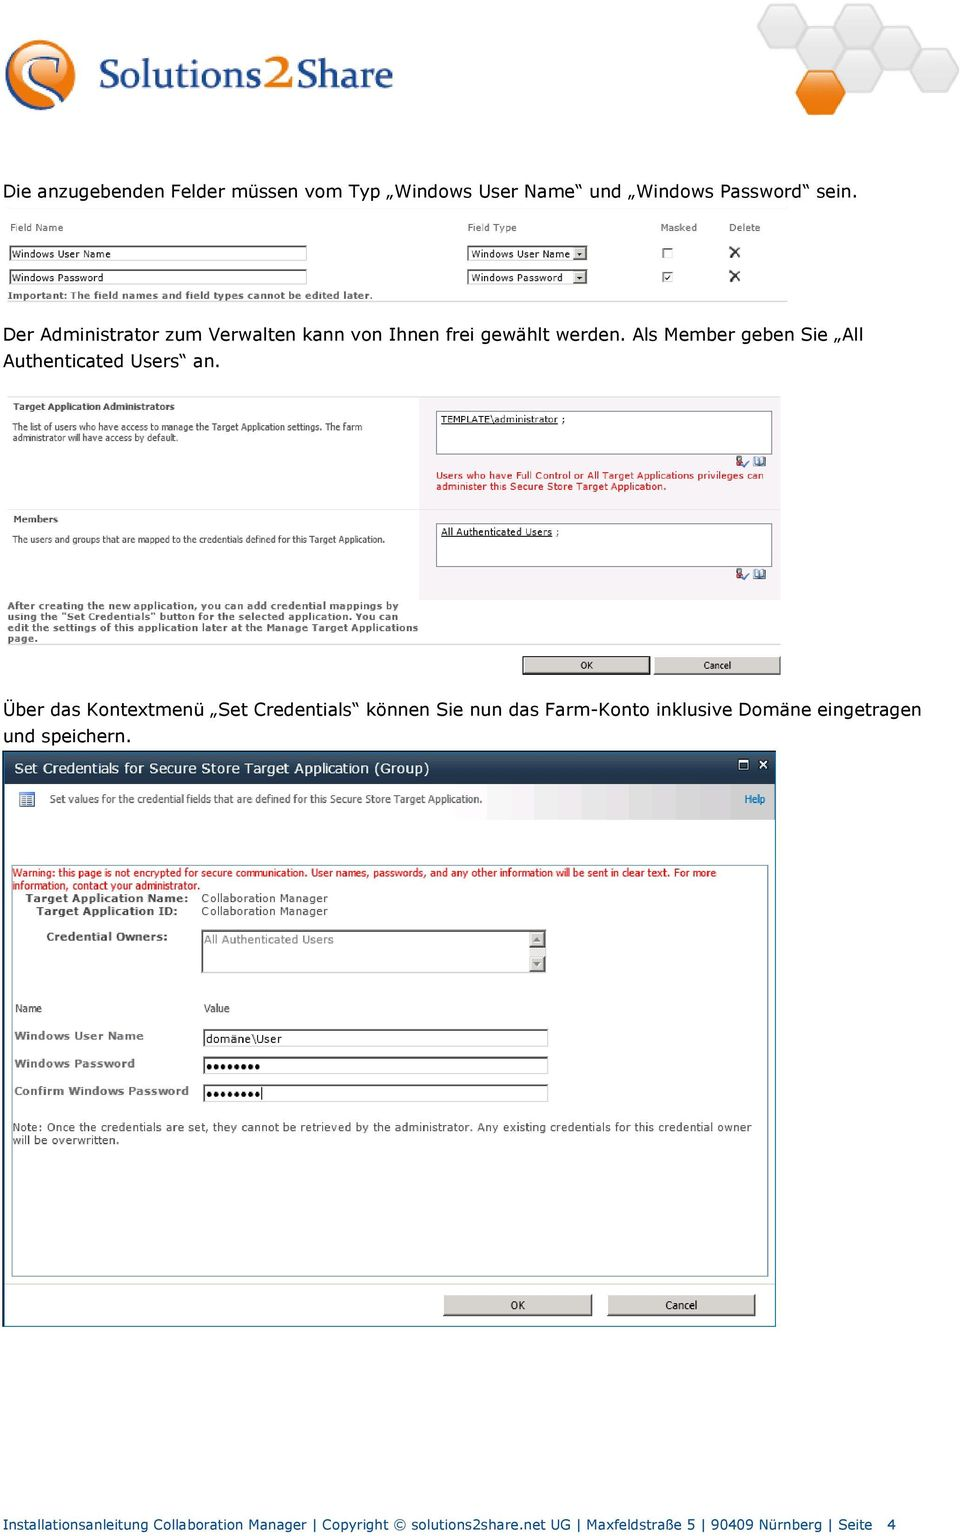 Als Member geben Sie All Authenticated Users an.